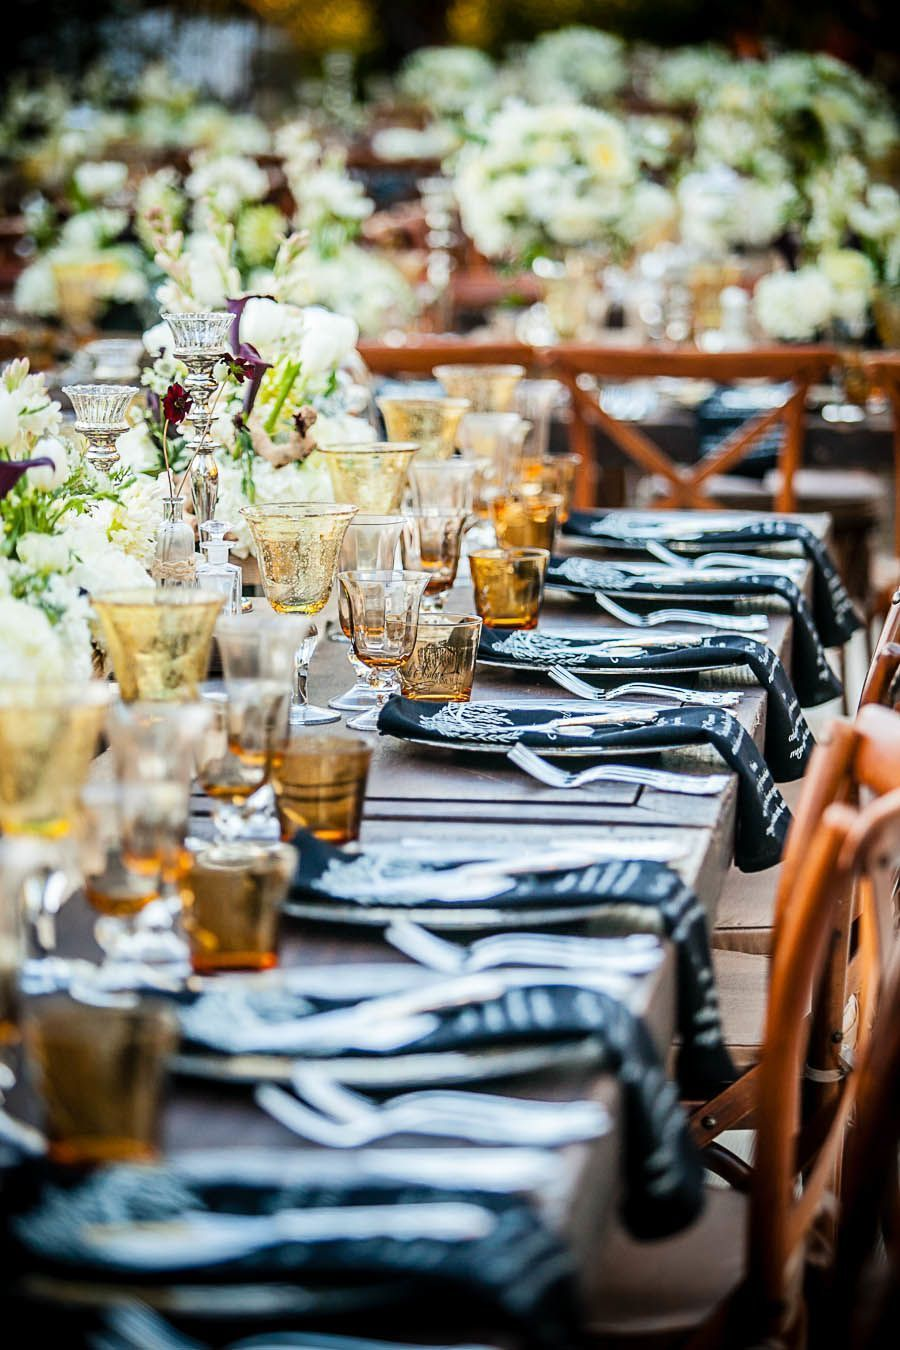 An Outdoor Wedding With Modern Elegance from Arrowood Photography. To see more: http://www.modwedding.com/2014/05/15/elegant-outdoor-wedding-from-arrowood-photography/ #wedding #weddings #reception #centerpiece